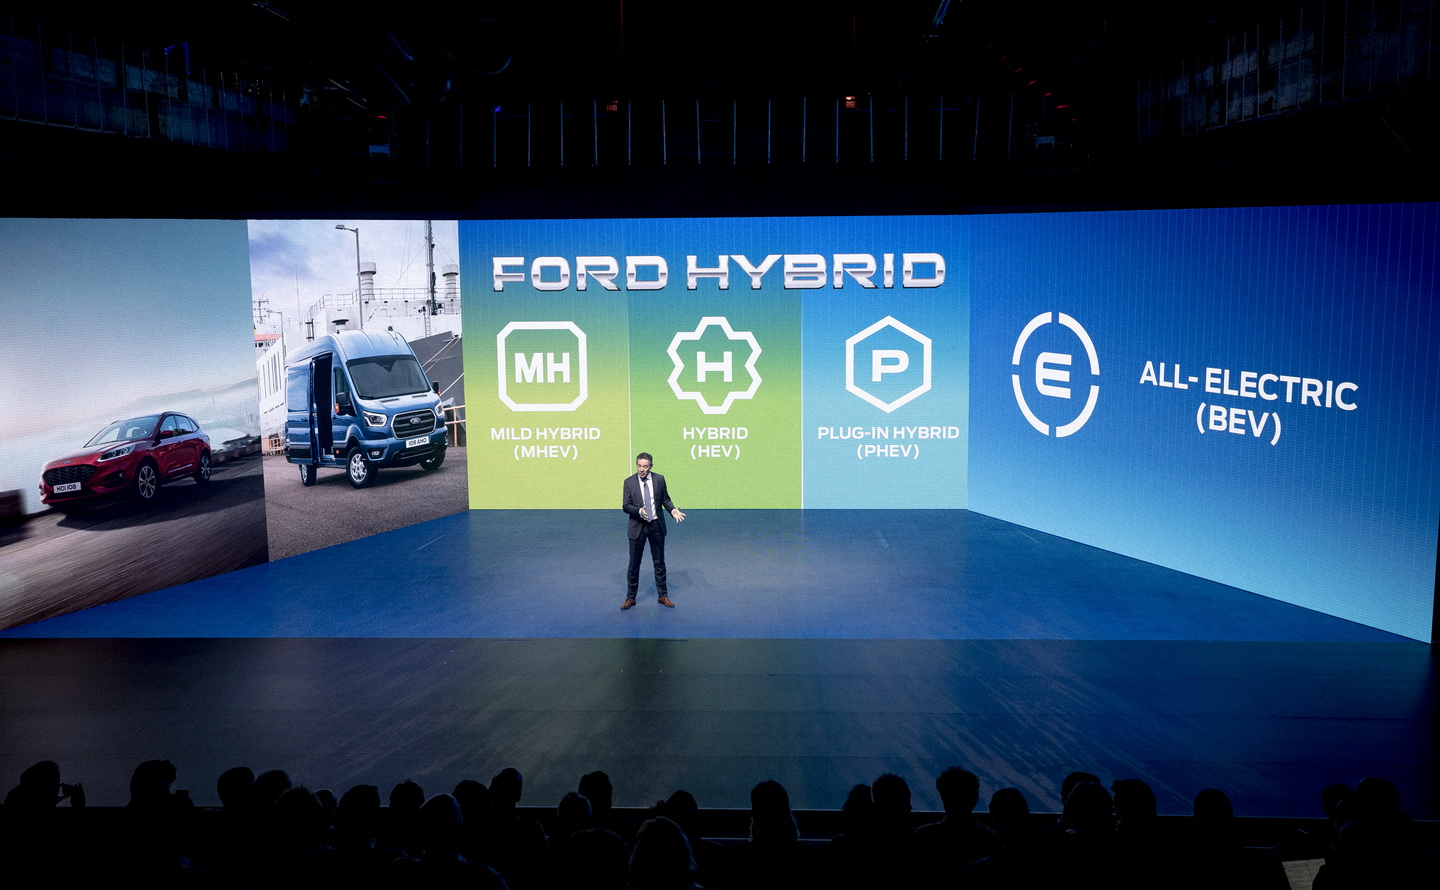 Ford Go Further 2019 event hybrid cars 62